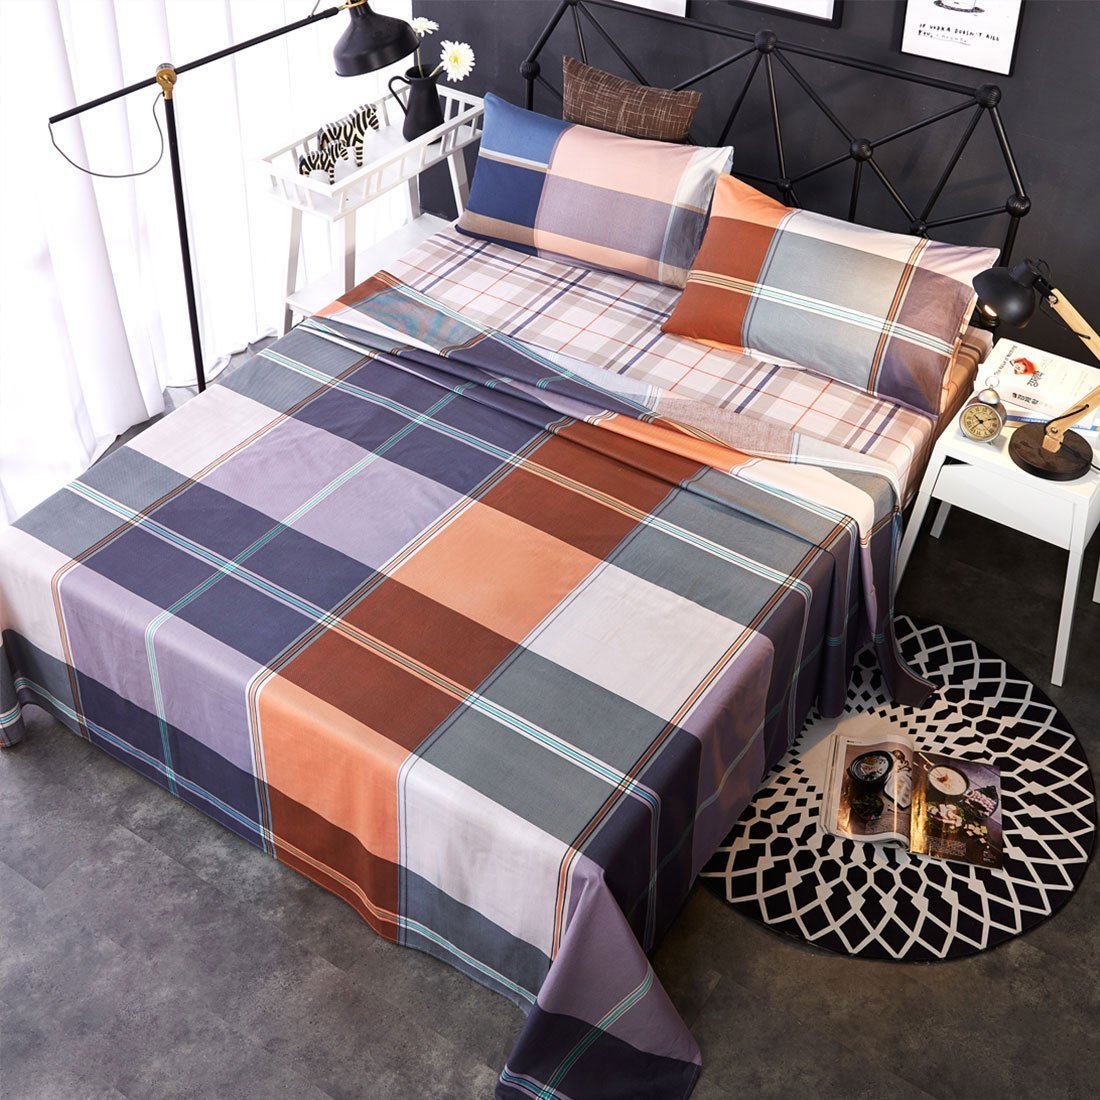 Uxcell Bed Sheets,100% Cotton Checkered Bed Sheet Sets,luxury Bedding Sheets ,